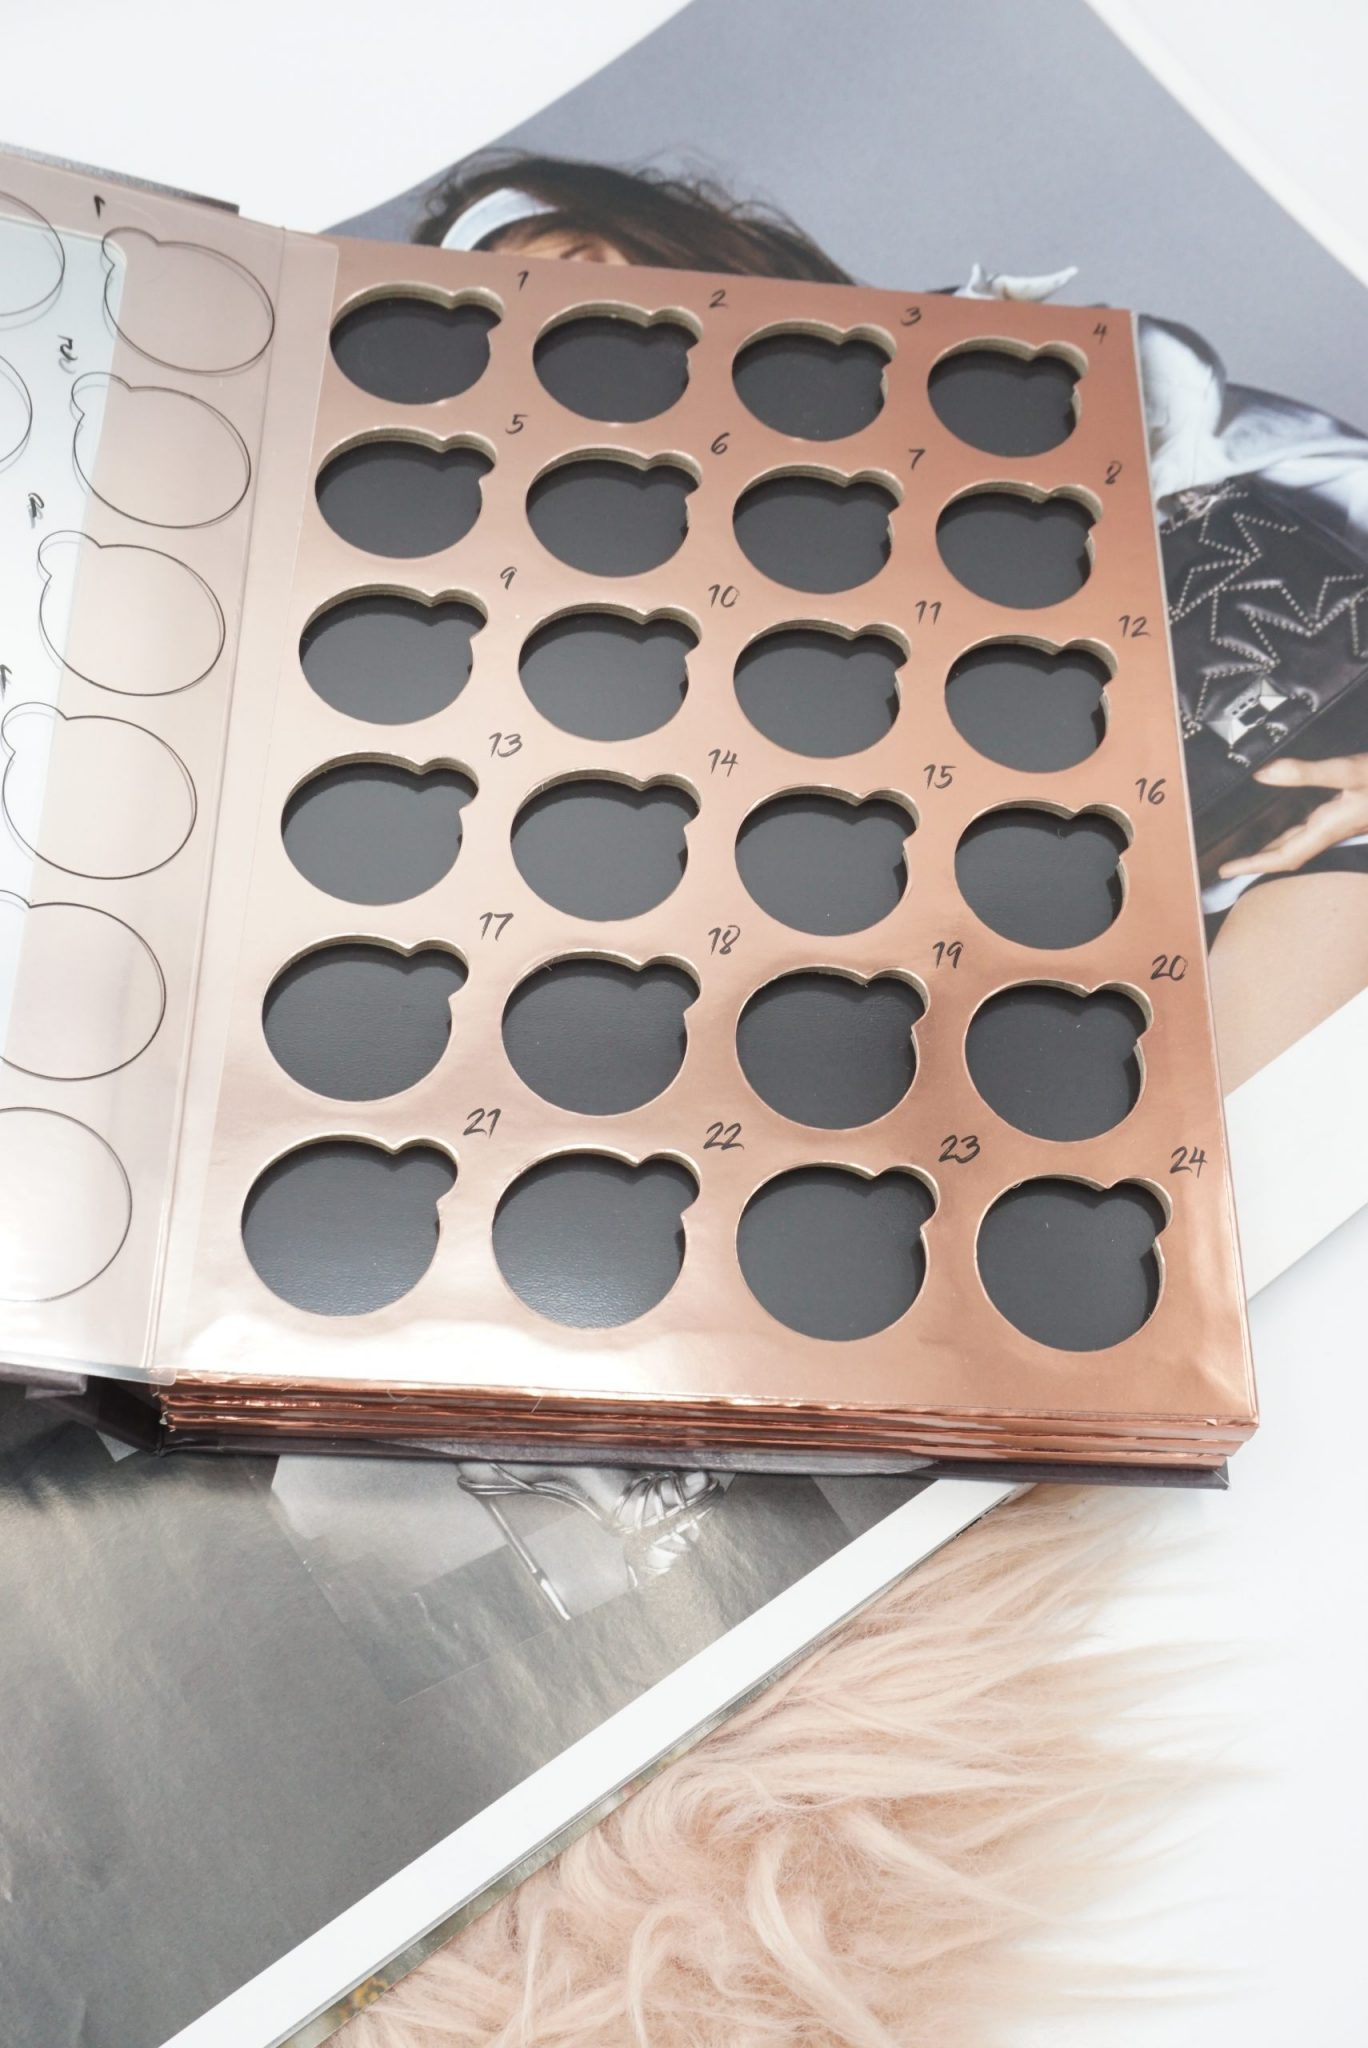 New Coloured Raine Book Of Shades: Store Up to 72 Eyeshadow Singles! ⋆ Beautymone